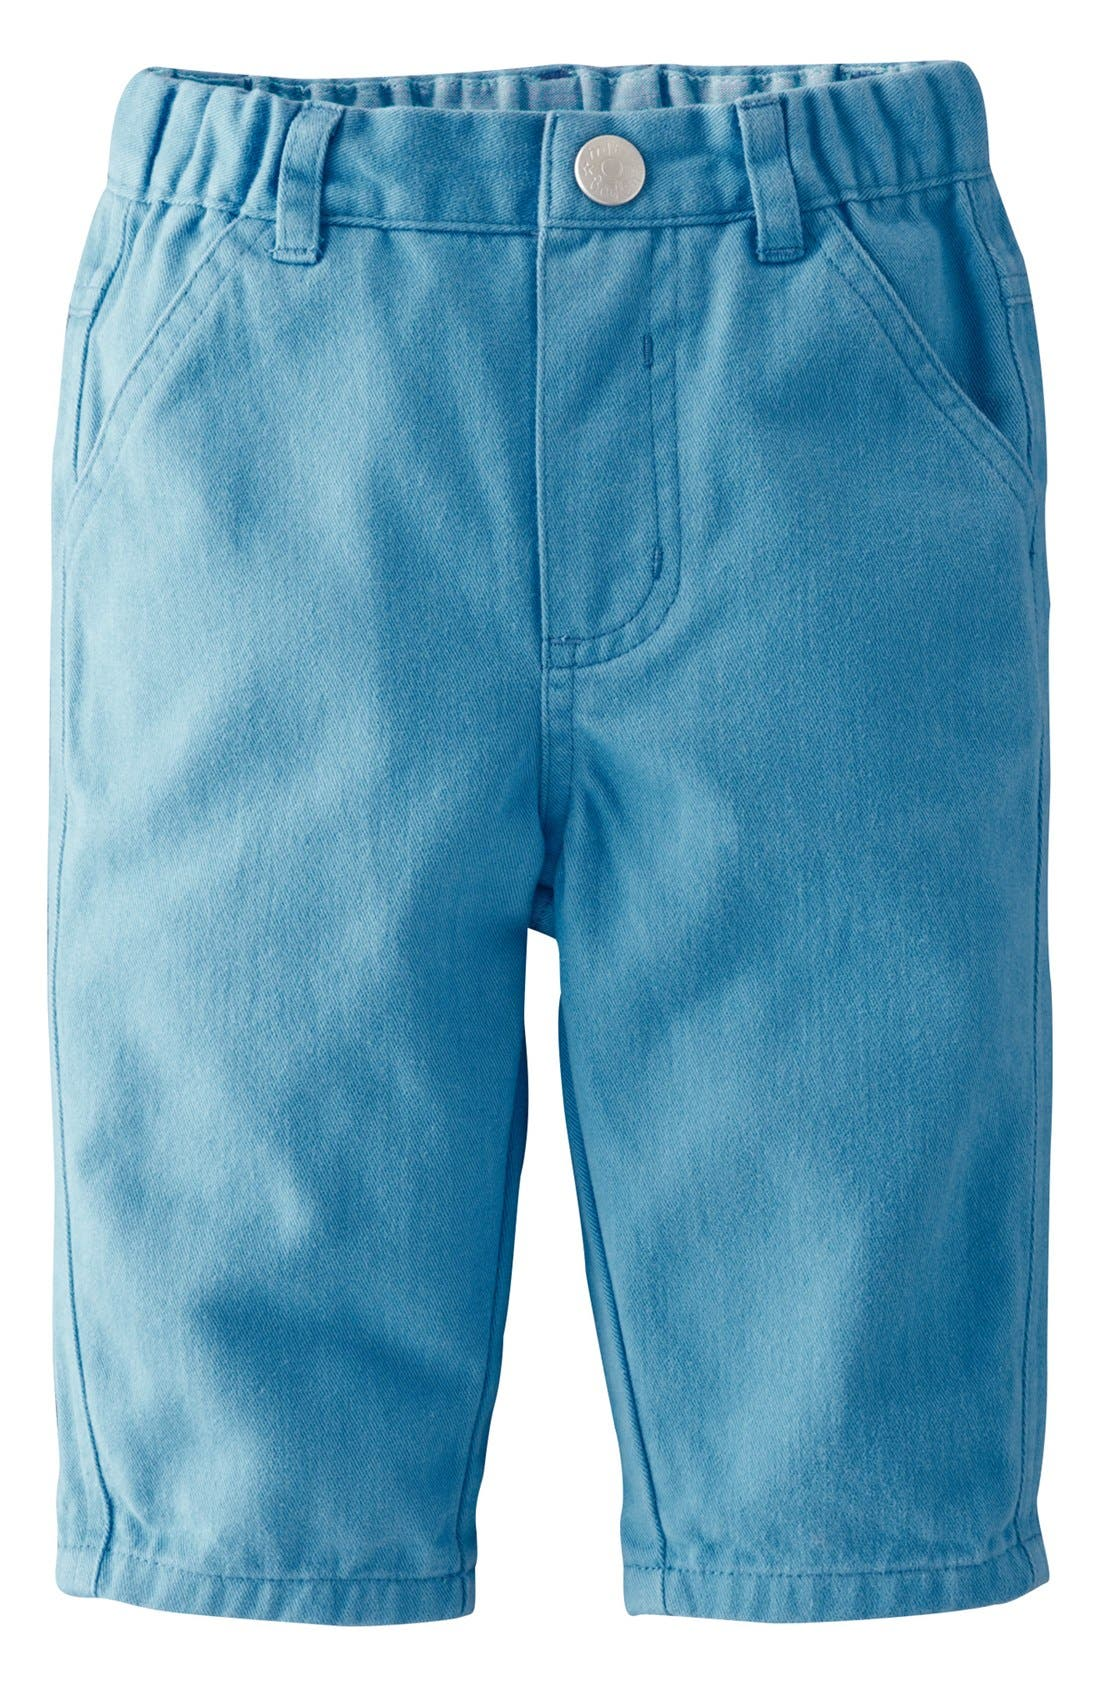 Main Image - Mini Boden Chinos (Baby Boys)